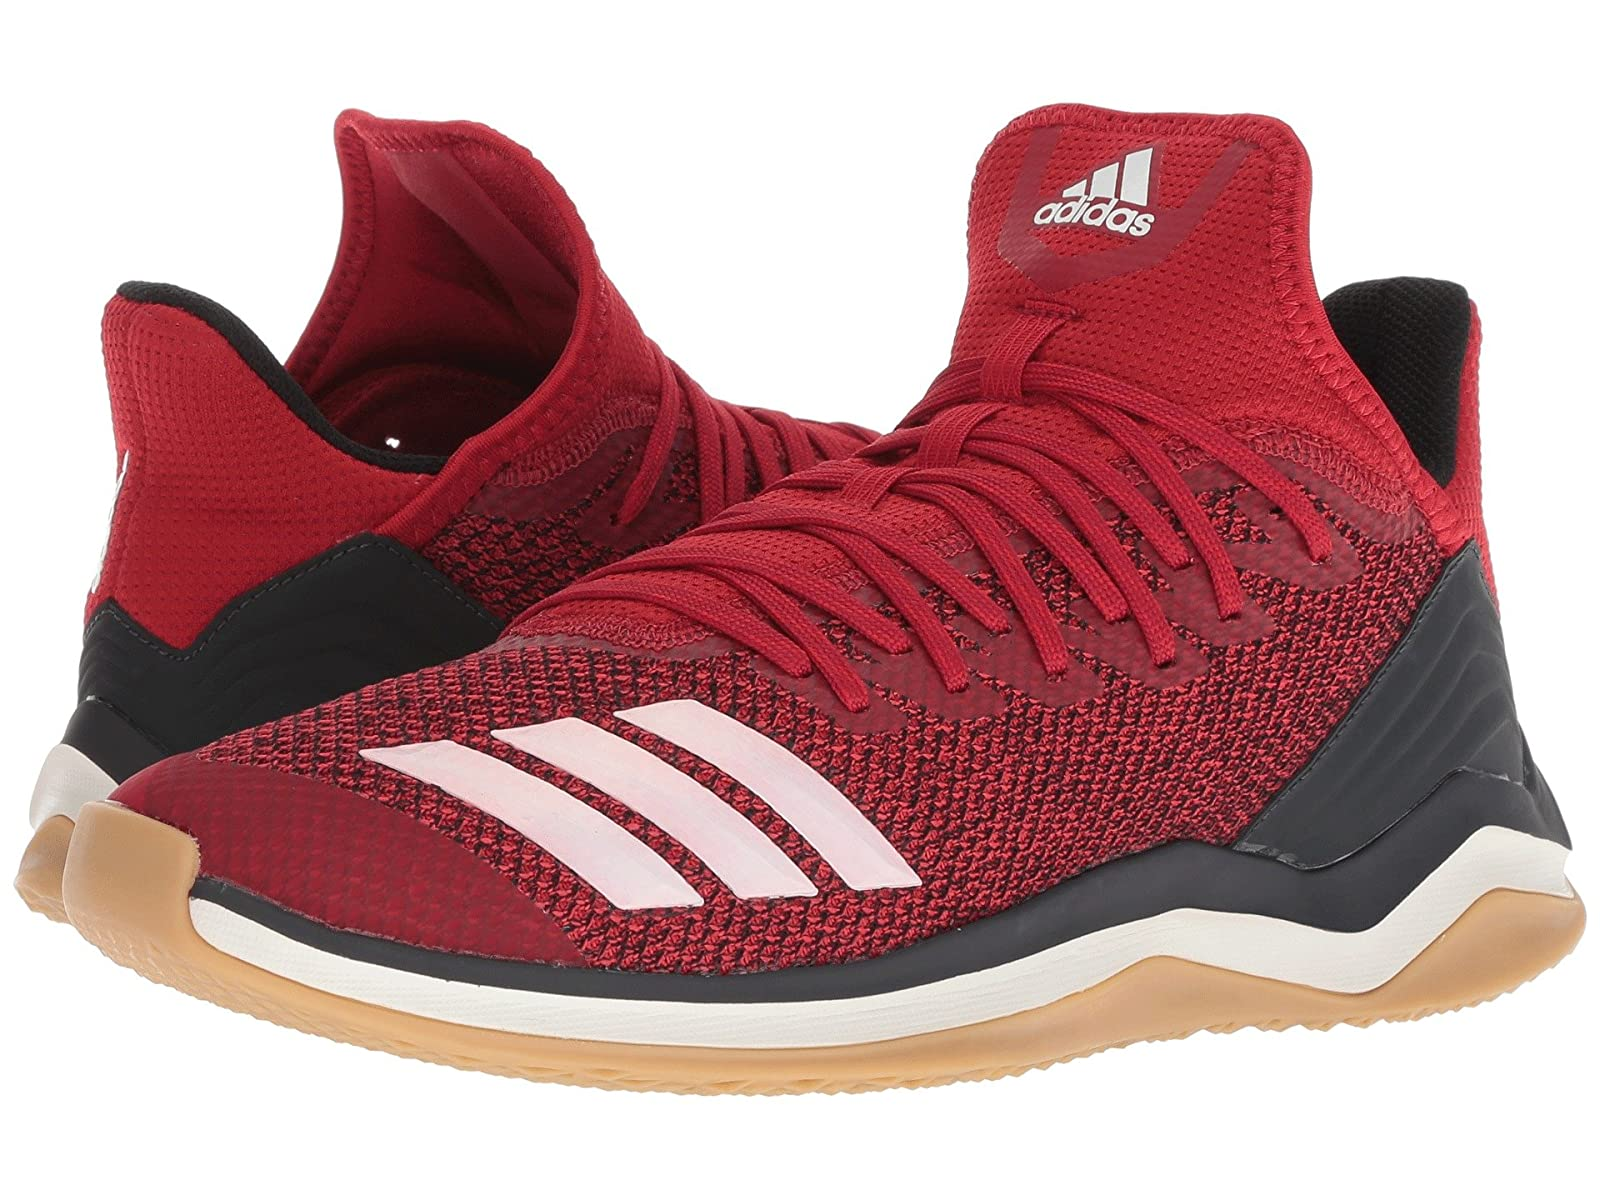 adidas Icon 4 TrainerAtmospheric grades have affordable shoes